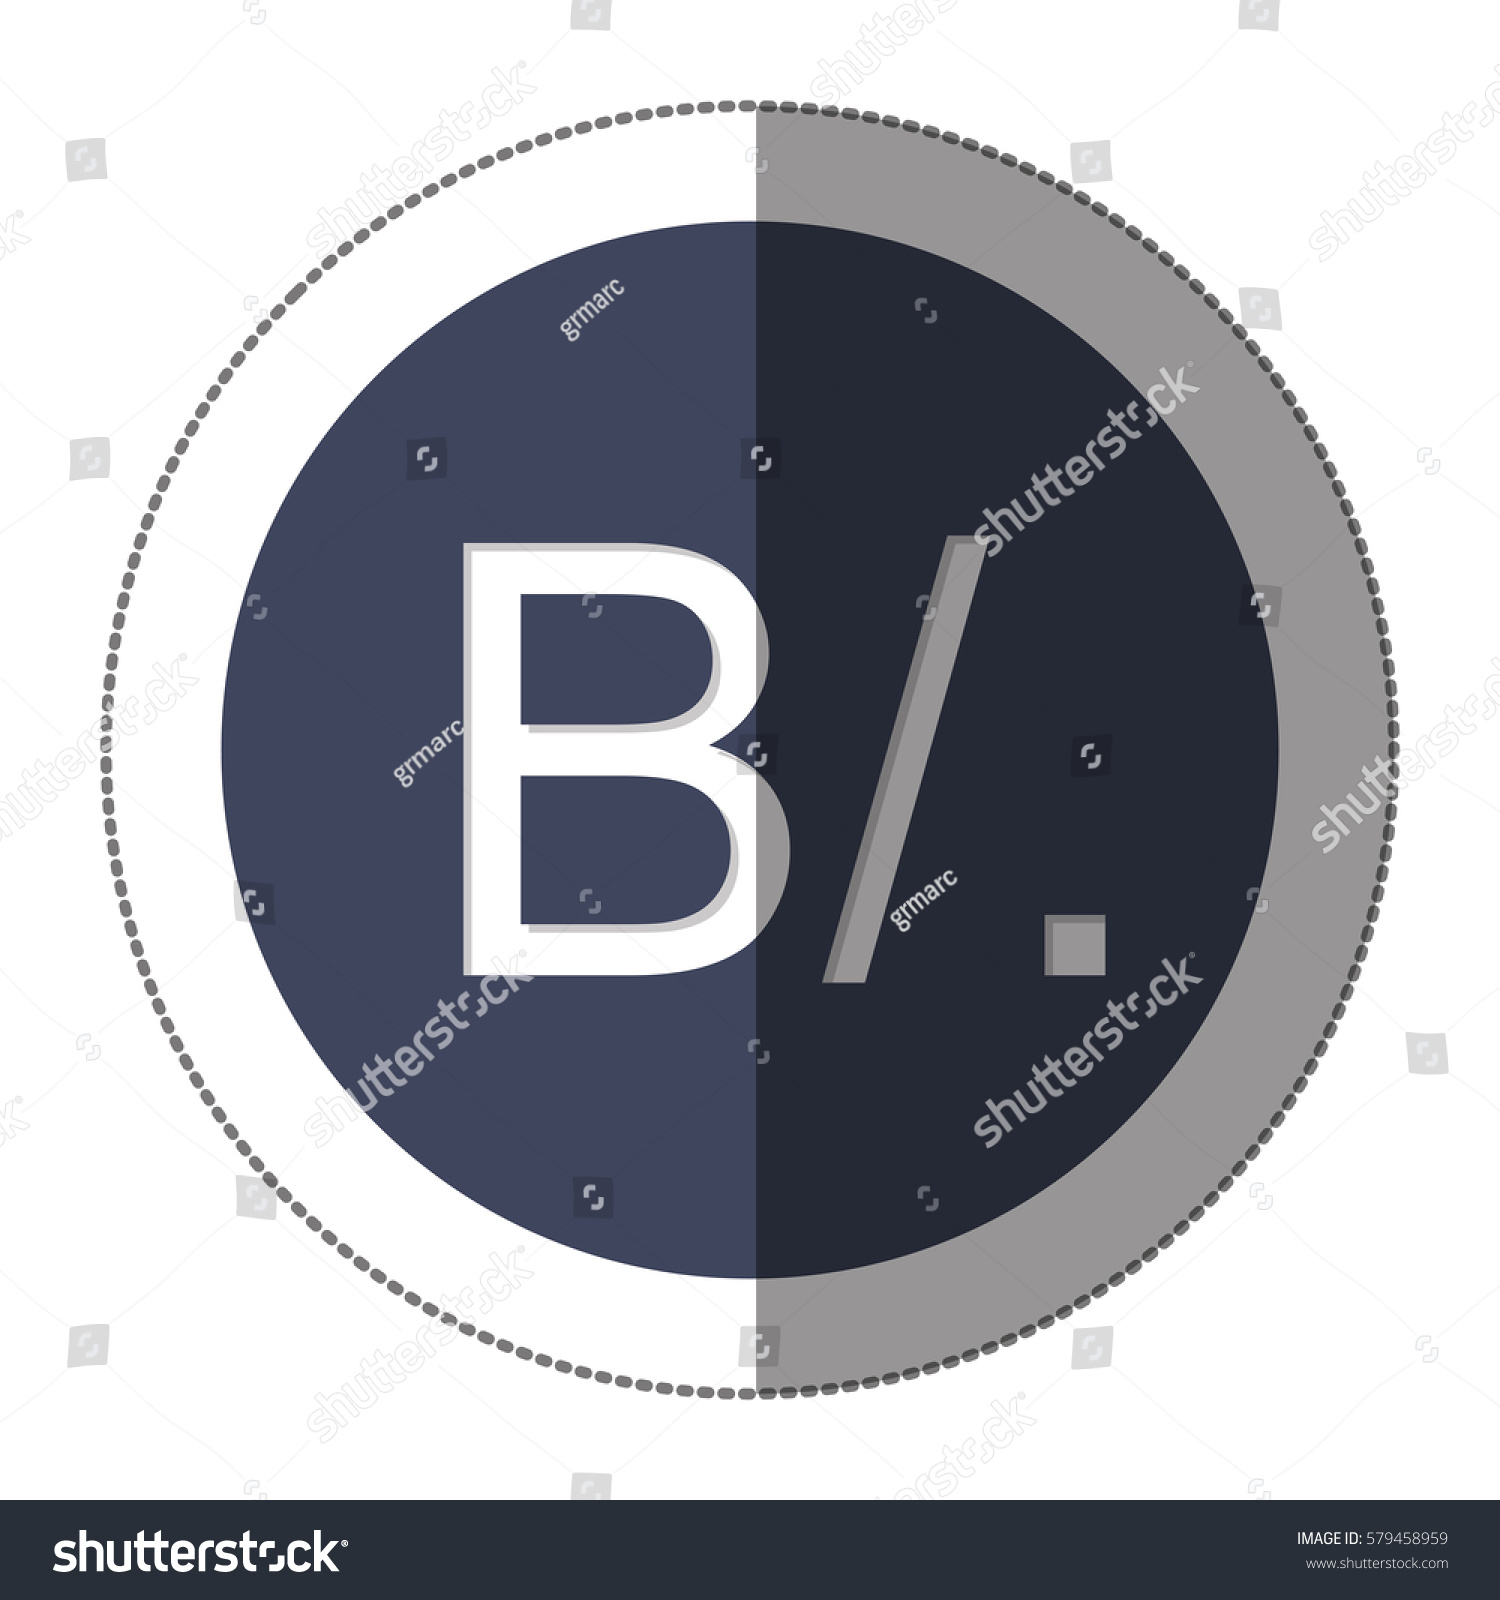 Aed currency symbol image collections symbol and sign ideas aed currency symbol image collections symbol and sign ideas united rentals stock symbol images symbol and biocorpaavc